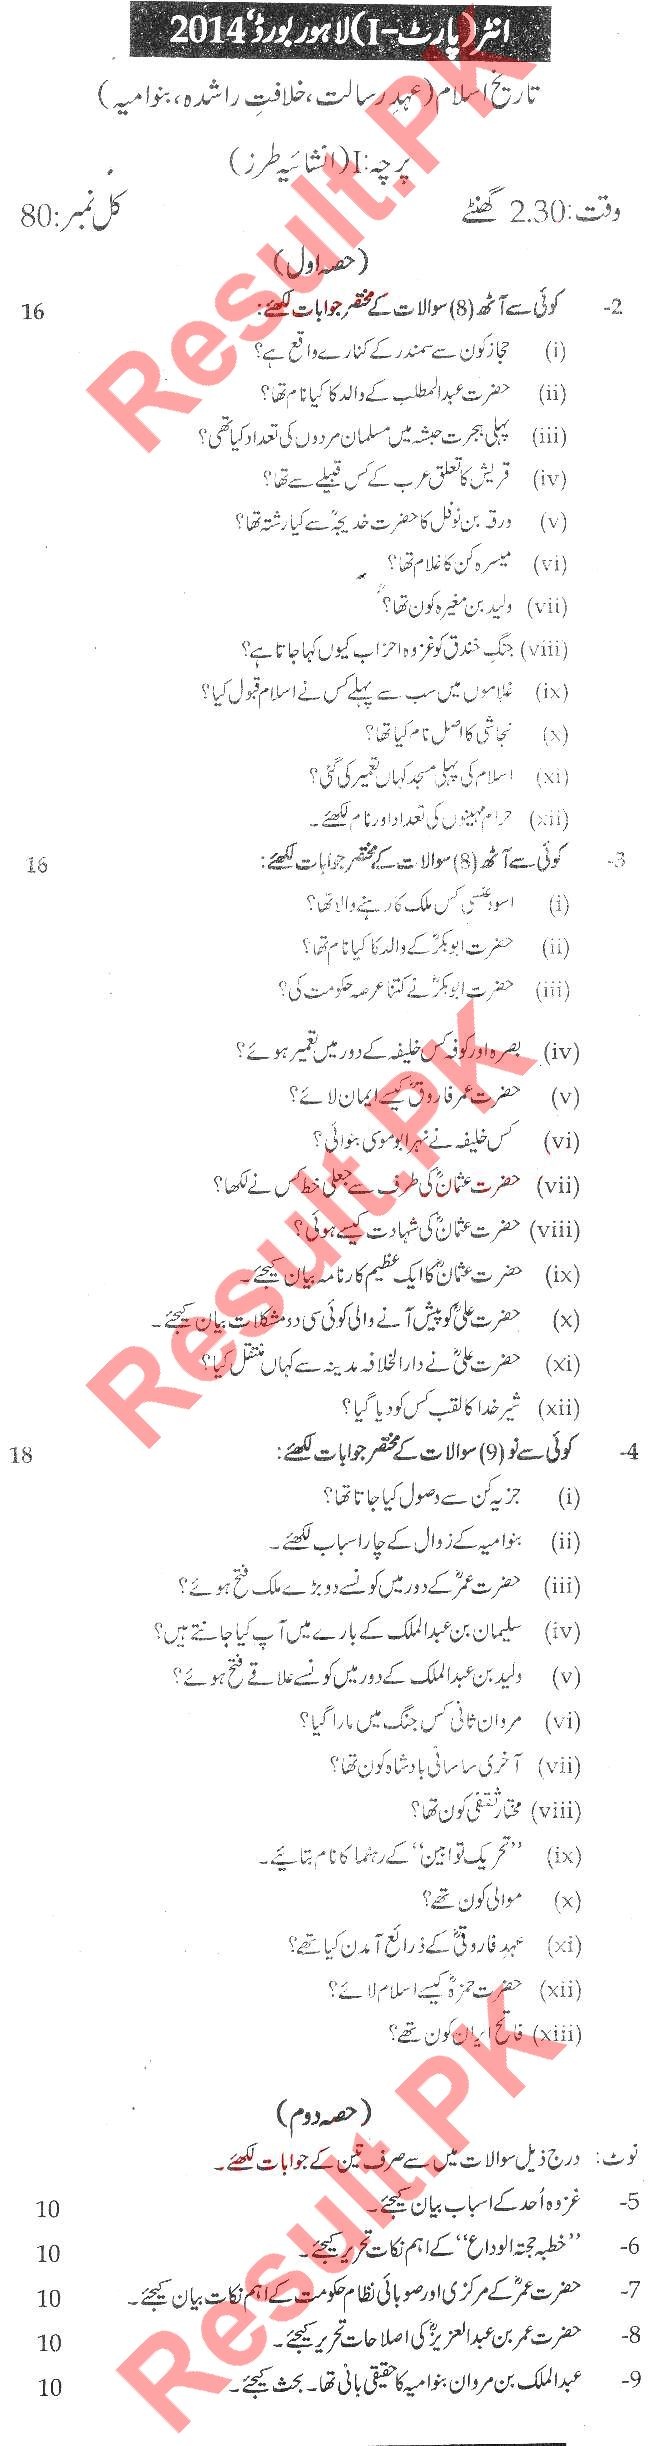 lahore board past papers for intermediate